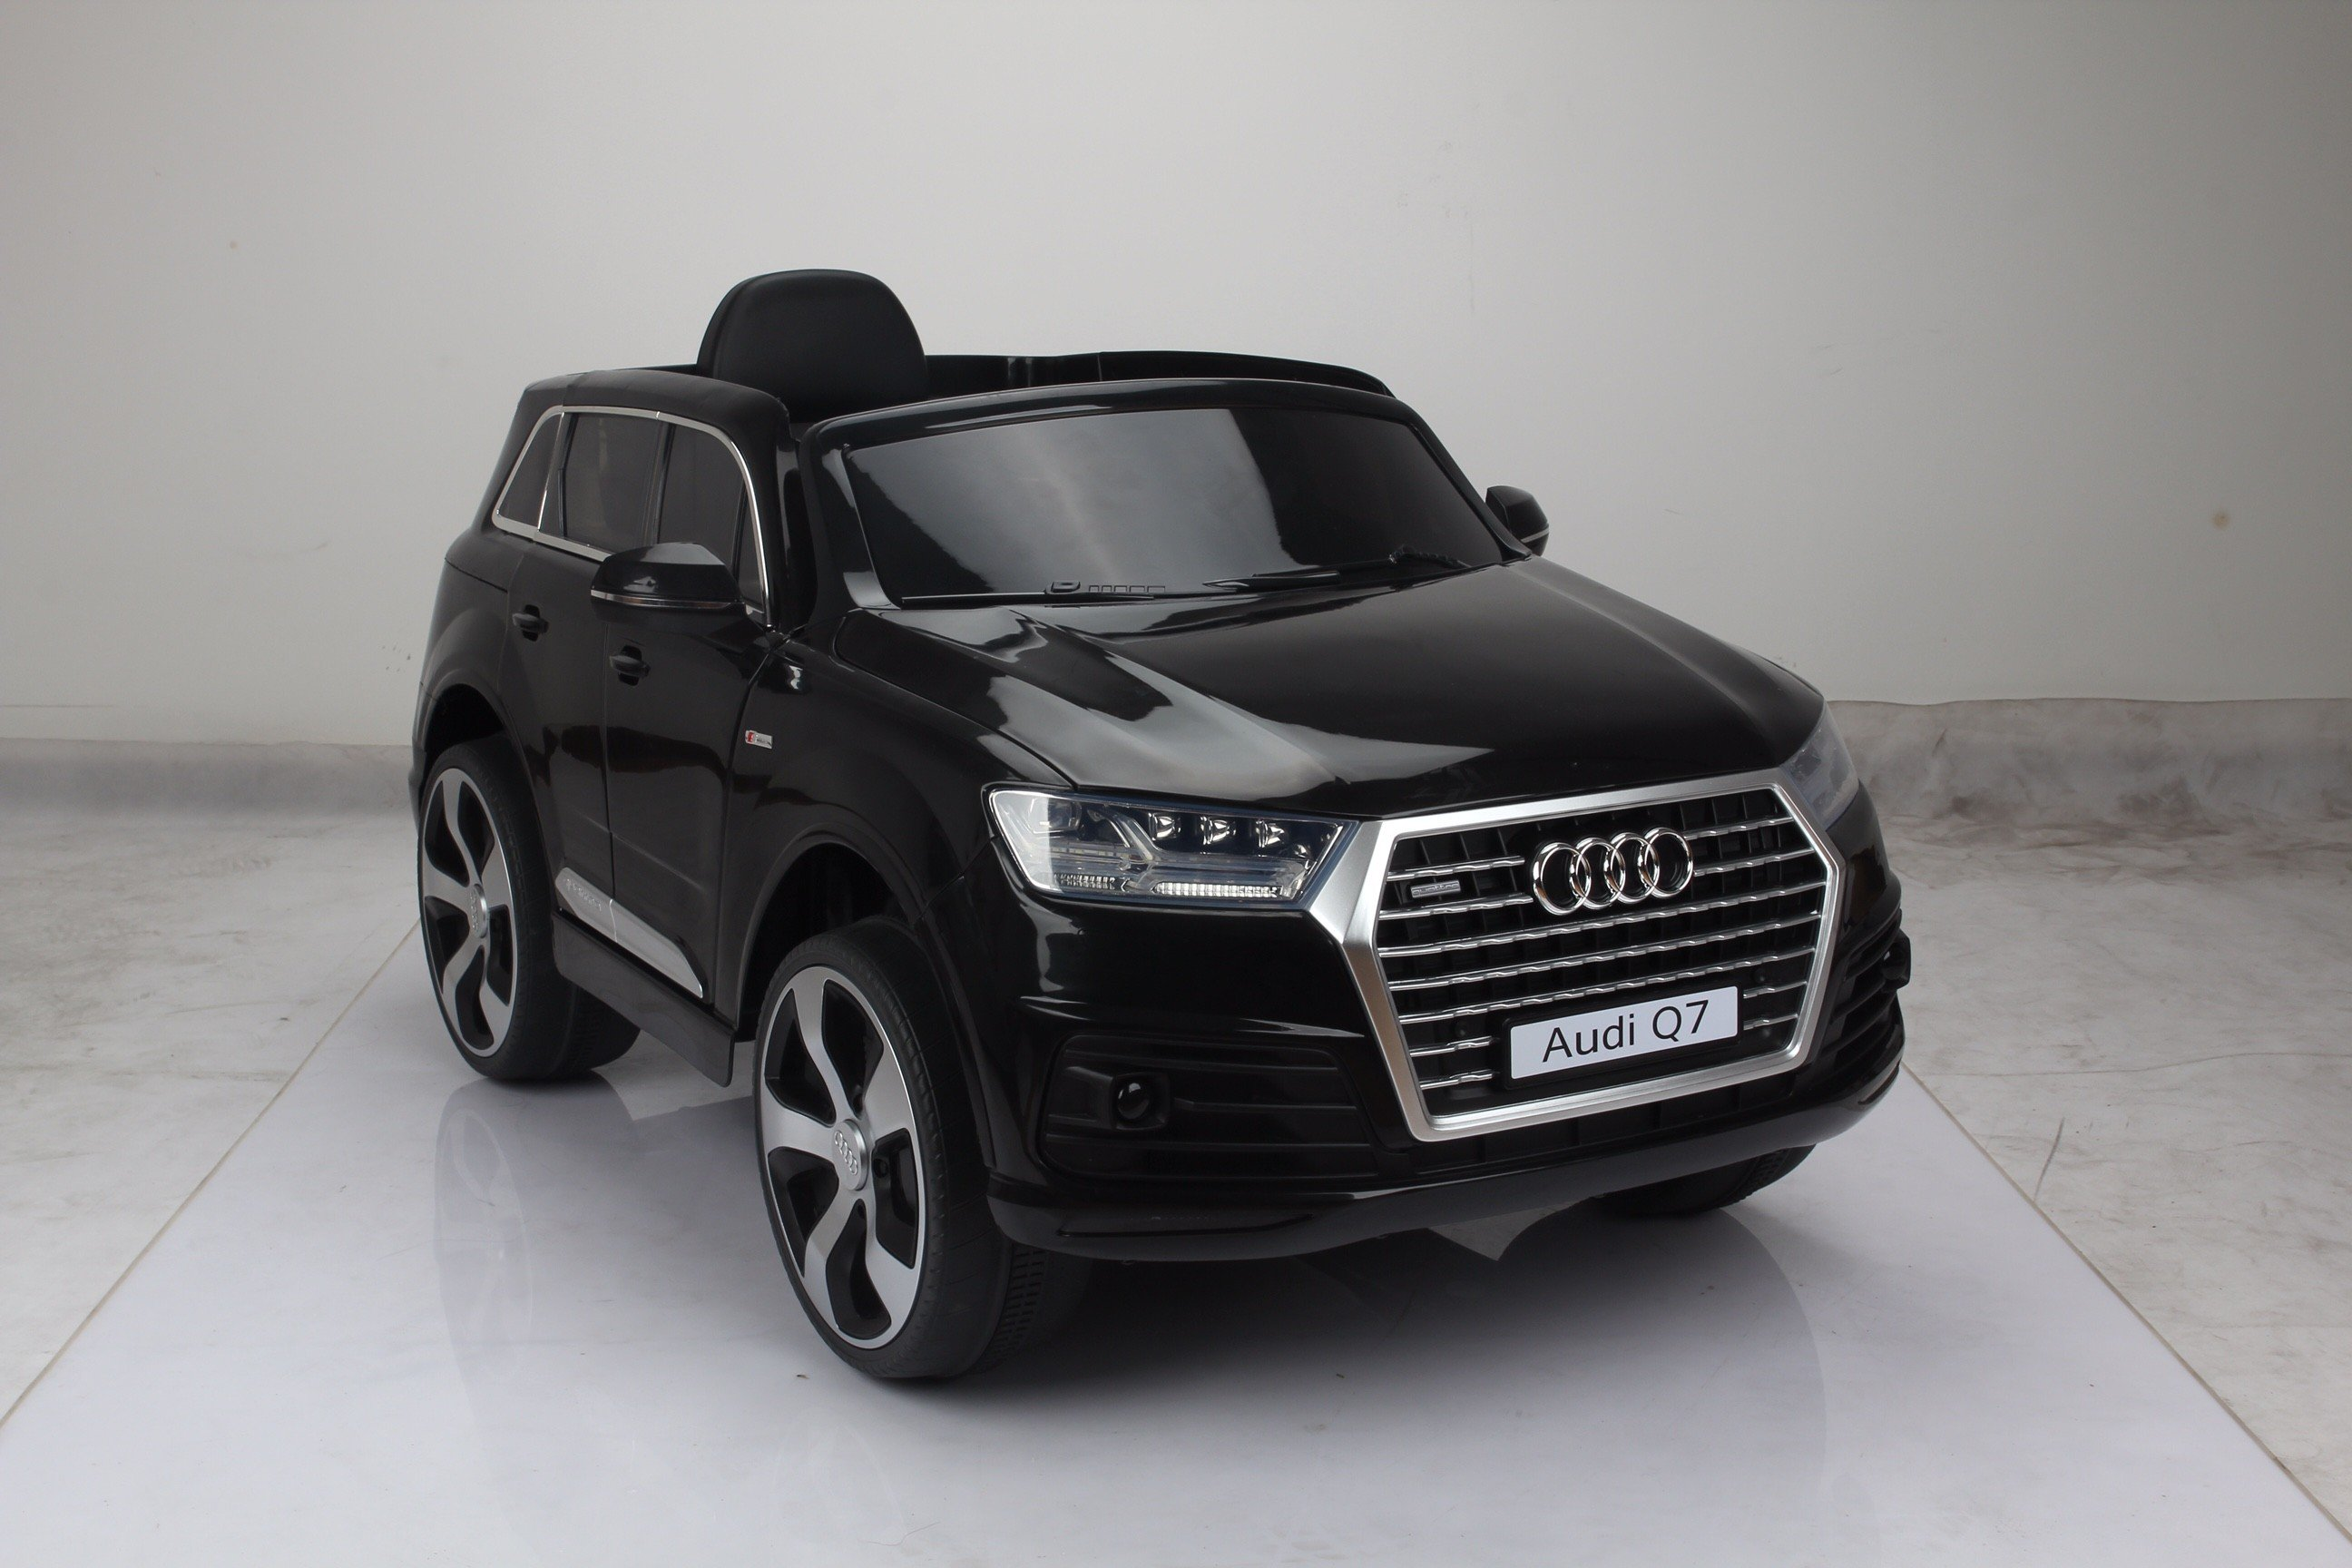 audi q7 4 2 tdi quattro kids electric ride on car 12v white red black ebay. Black Bedroom Furniture Sets. Home Design Ideas